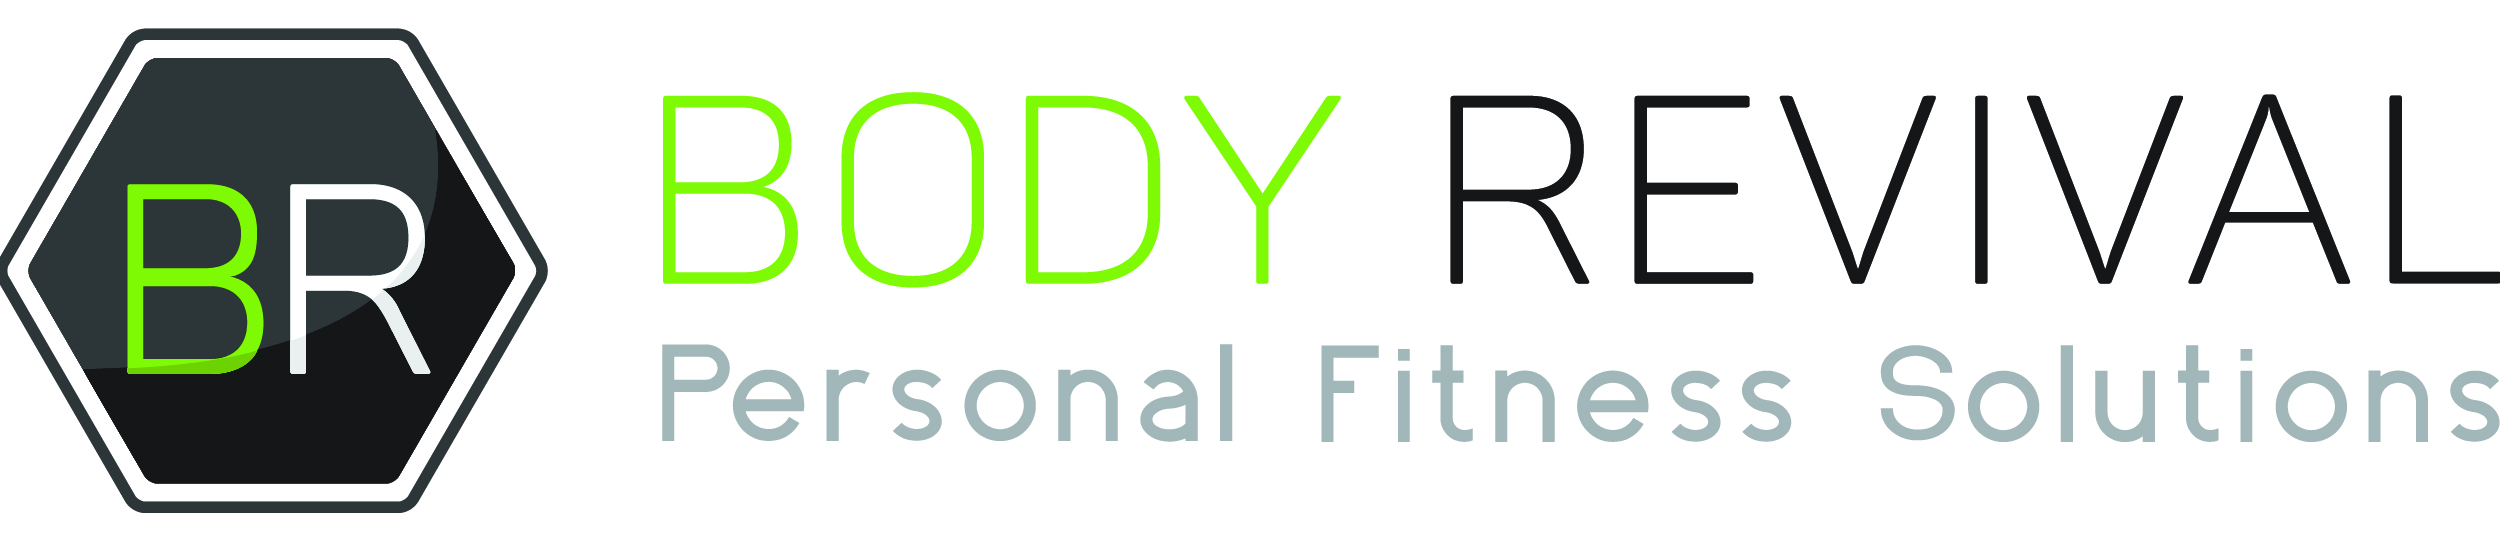 Body Revival Personal Fitness Solutions